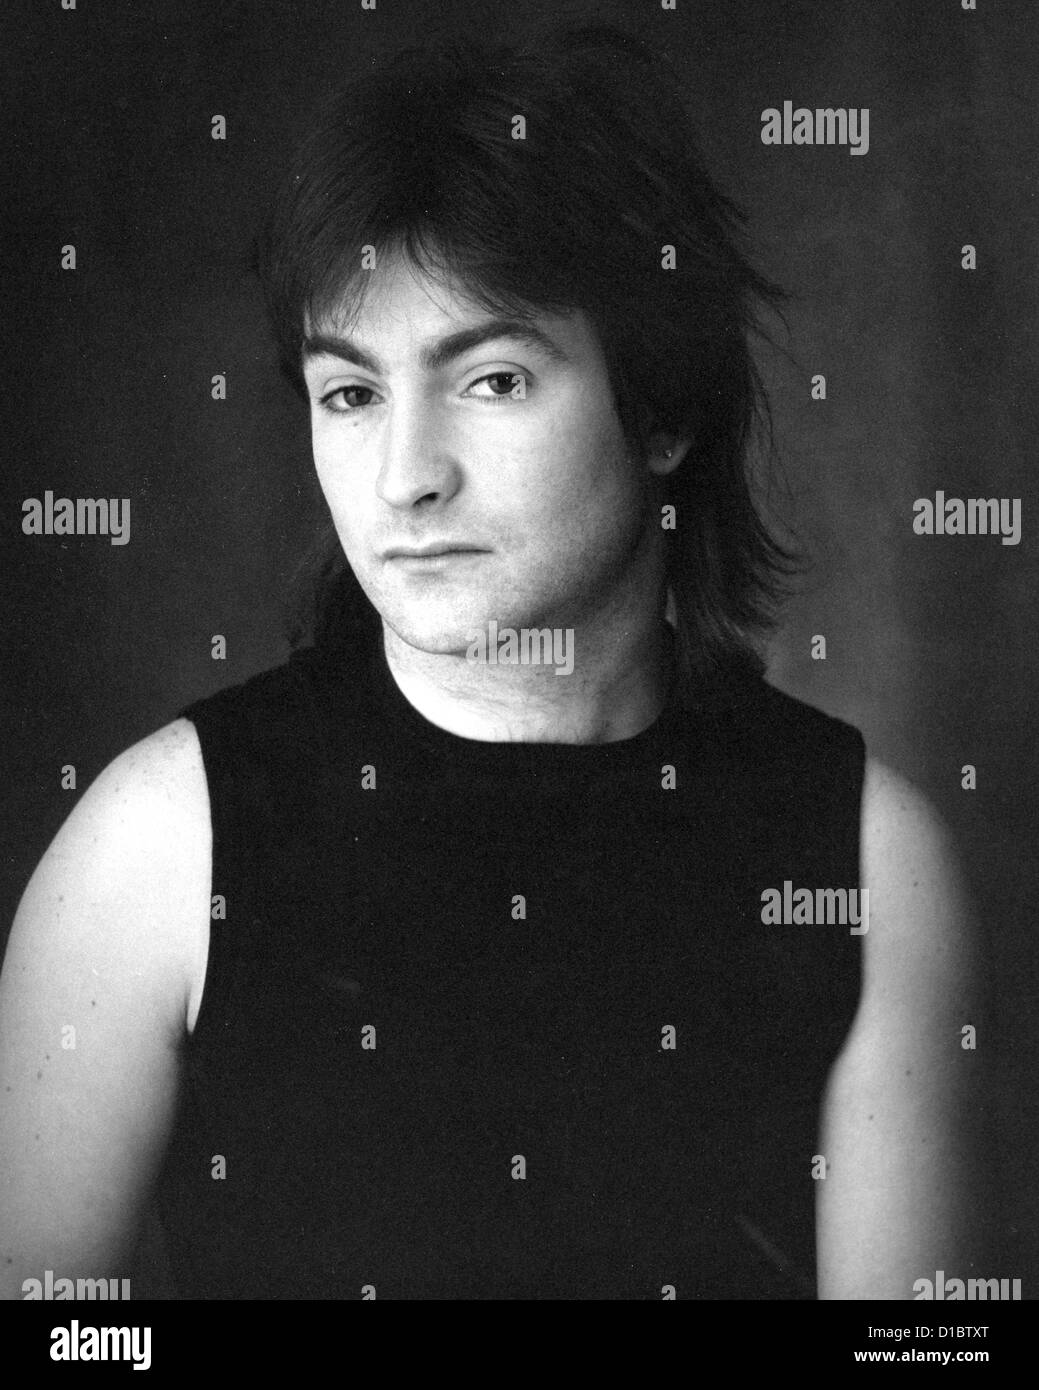 THE DAMNED Promotional photo of UK rock group member Bryn Merrick about 1990 - Stock Image